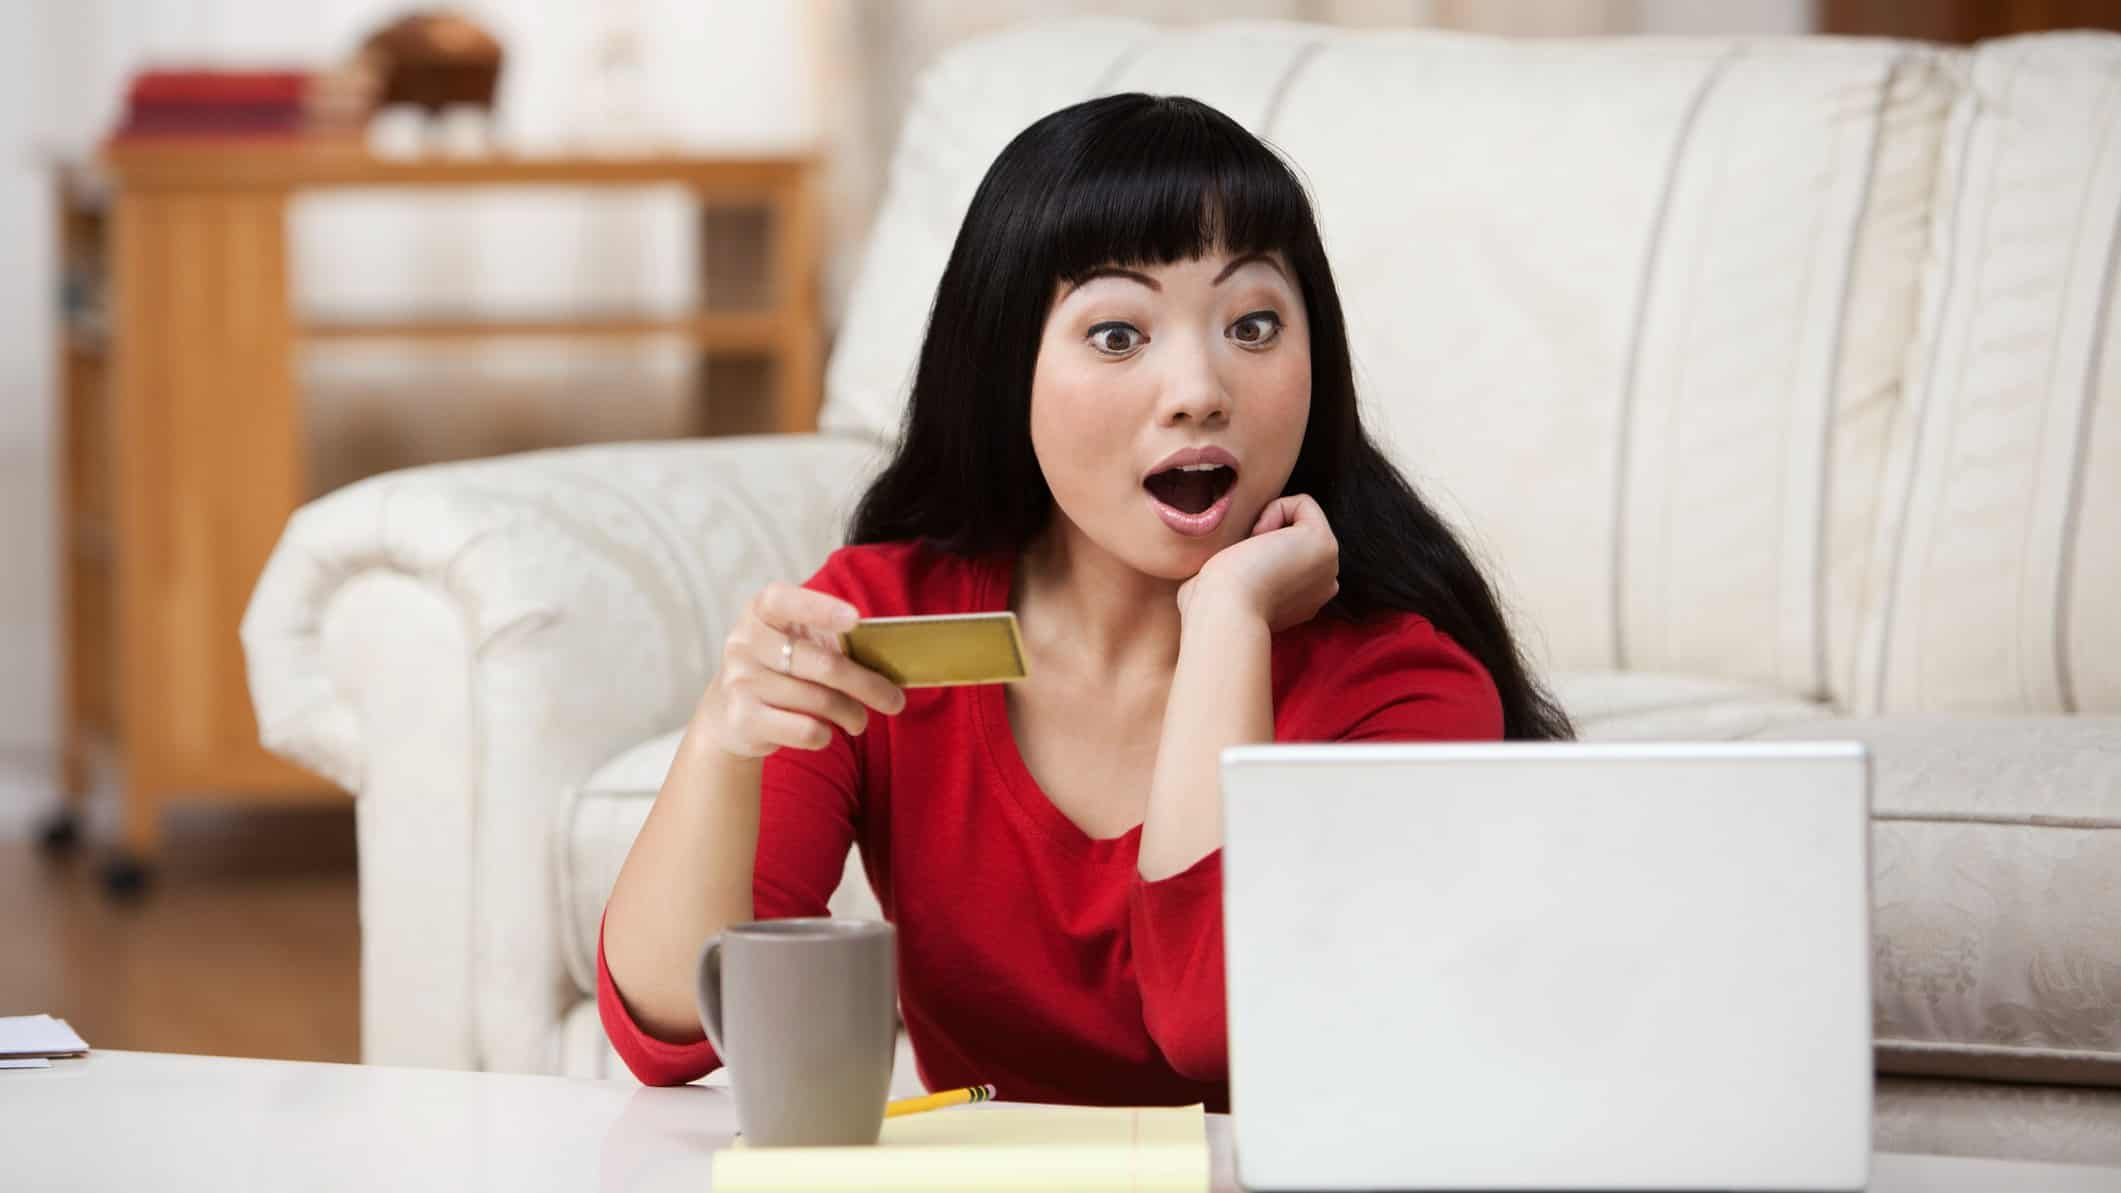 surprised shopper, unexpected news, person at computer with payment card,